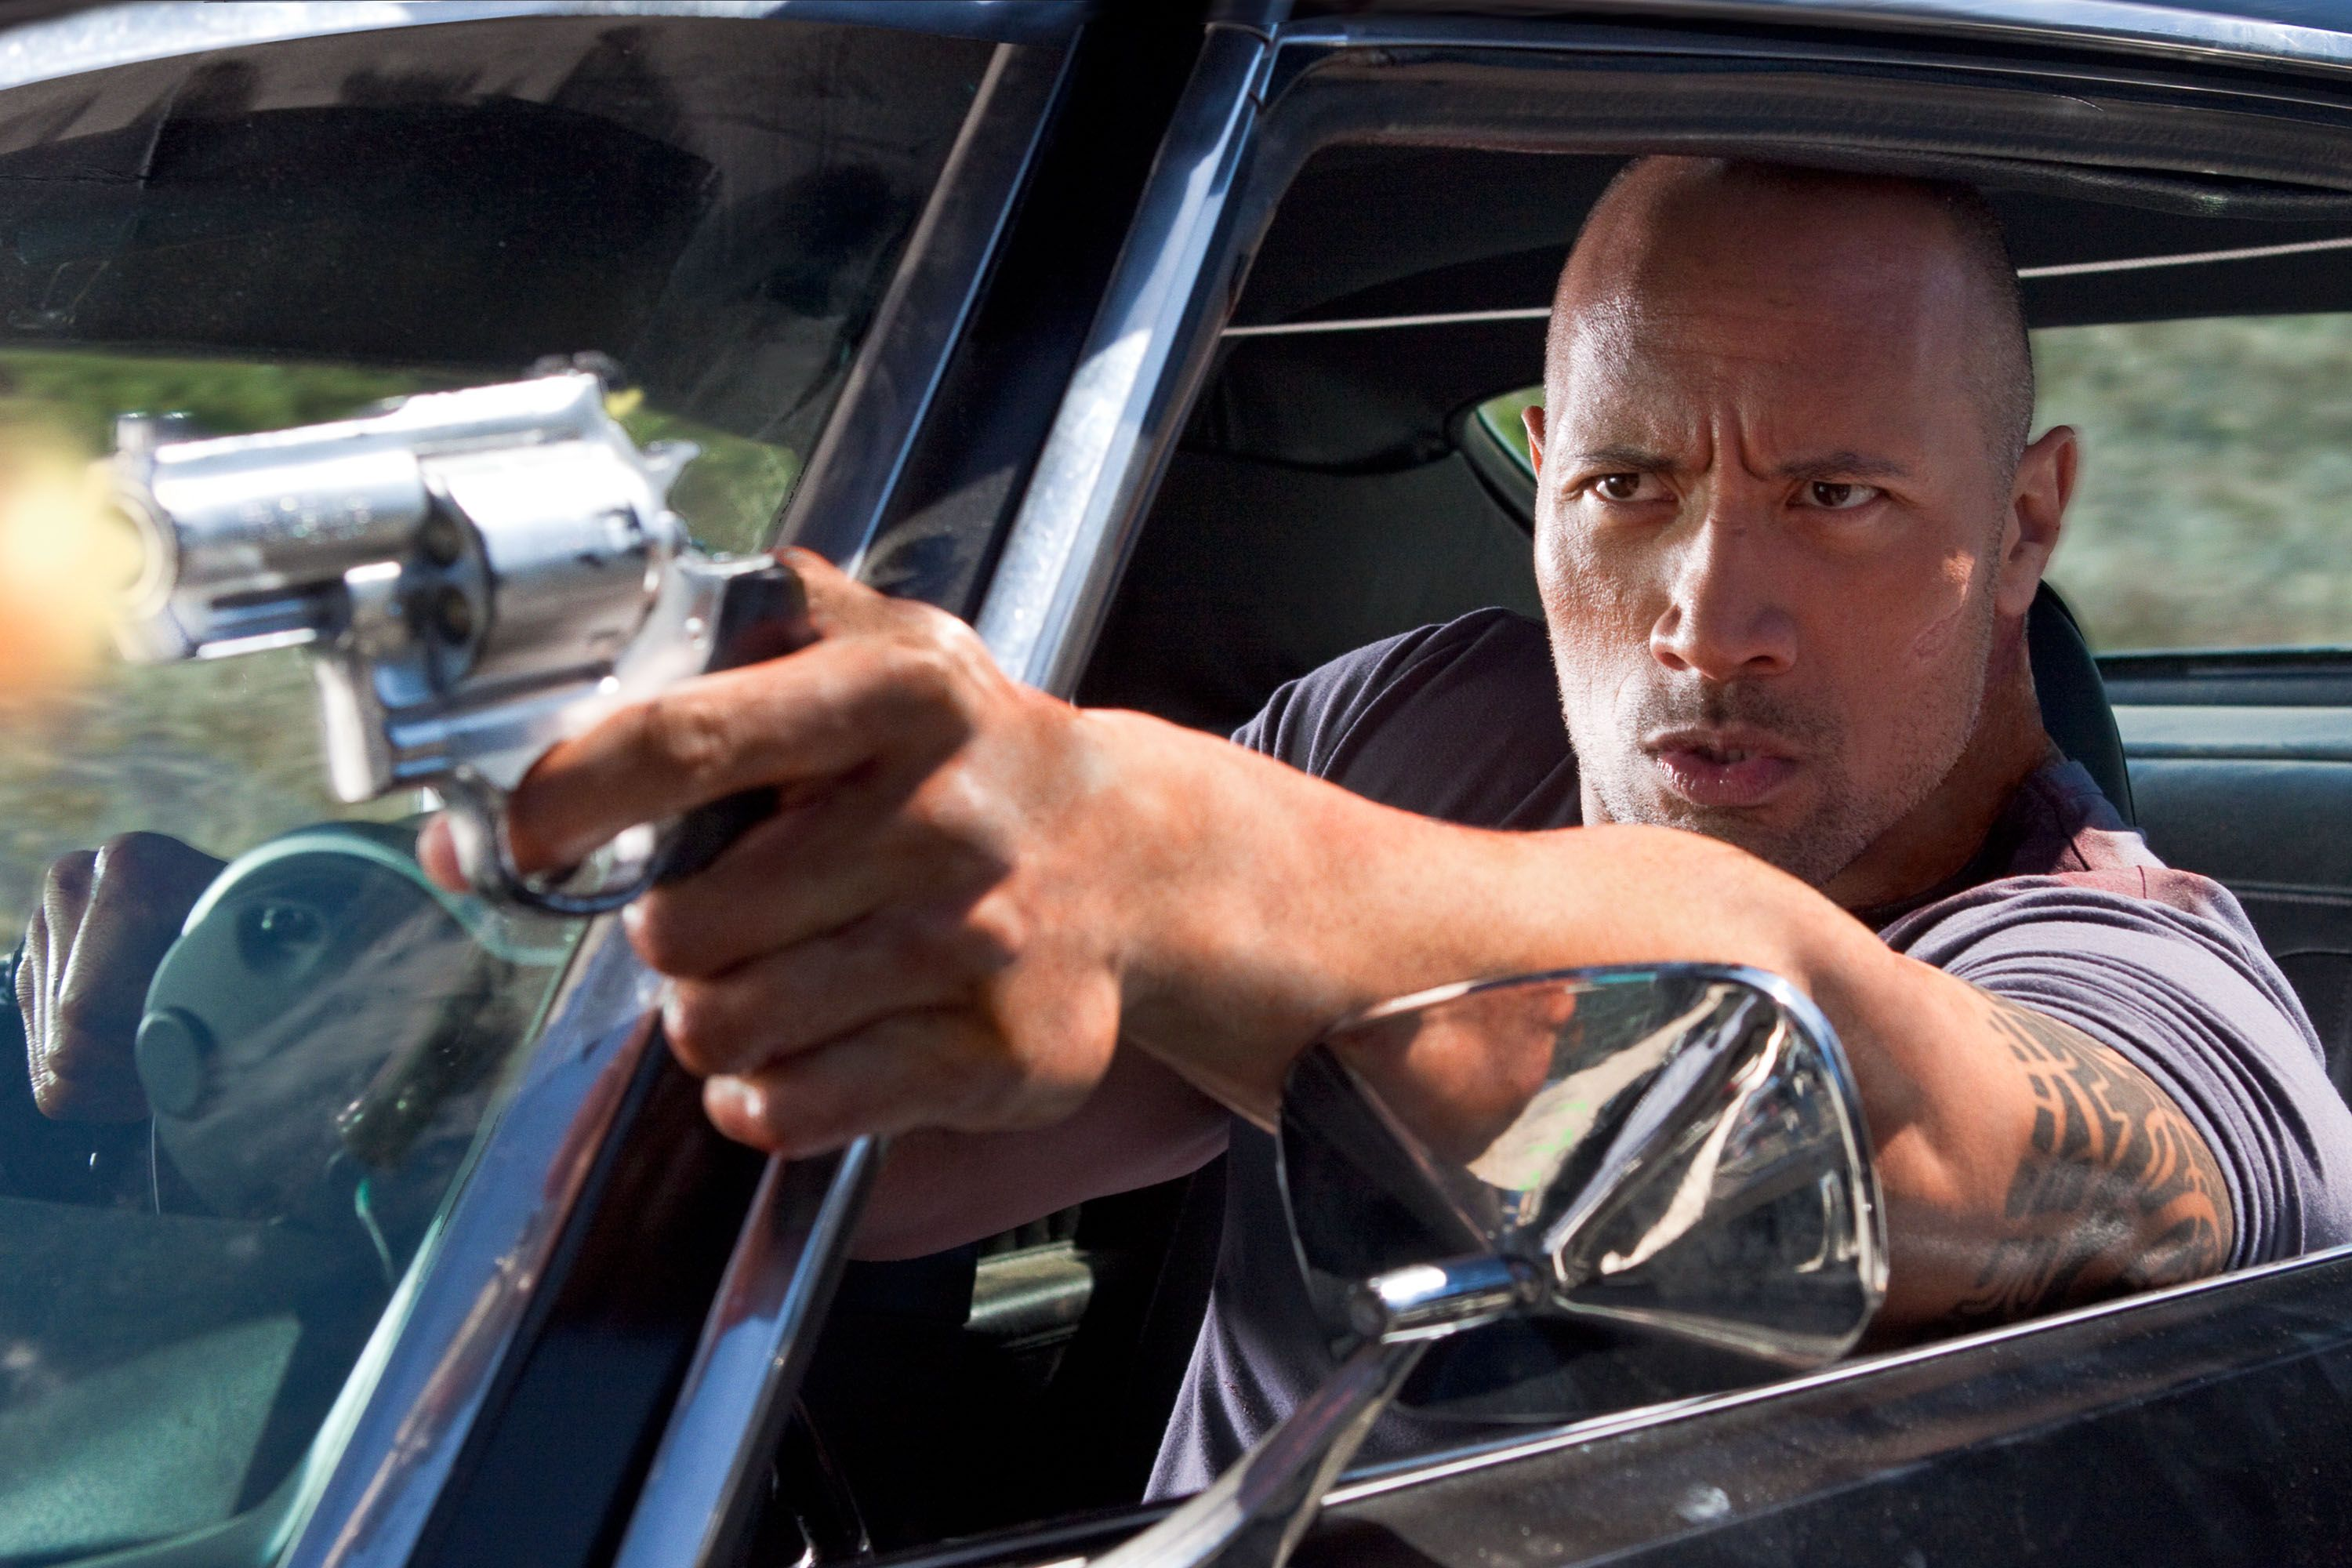 Dwayne Johnson Is the Great Action Star of This Generation